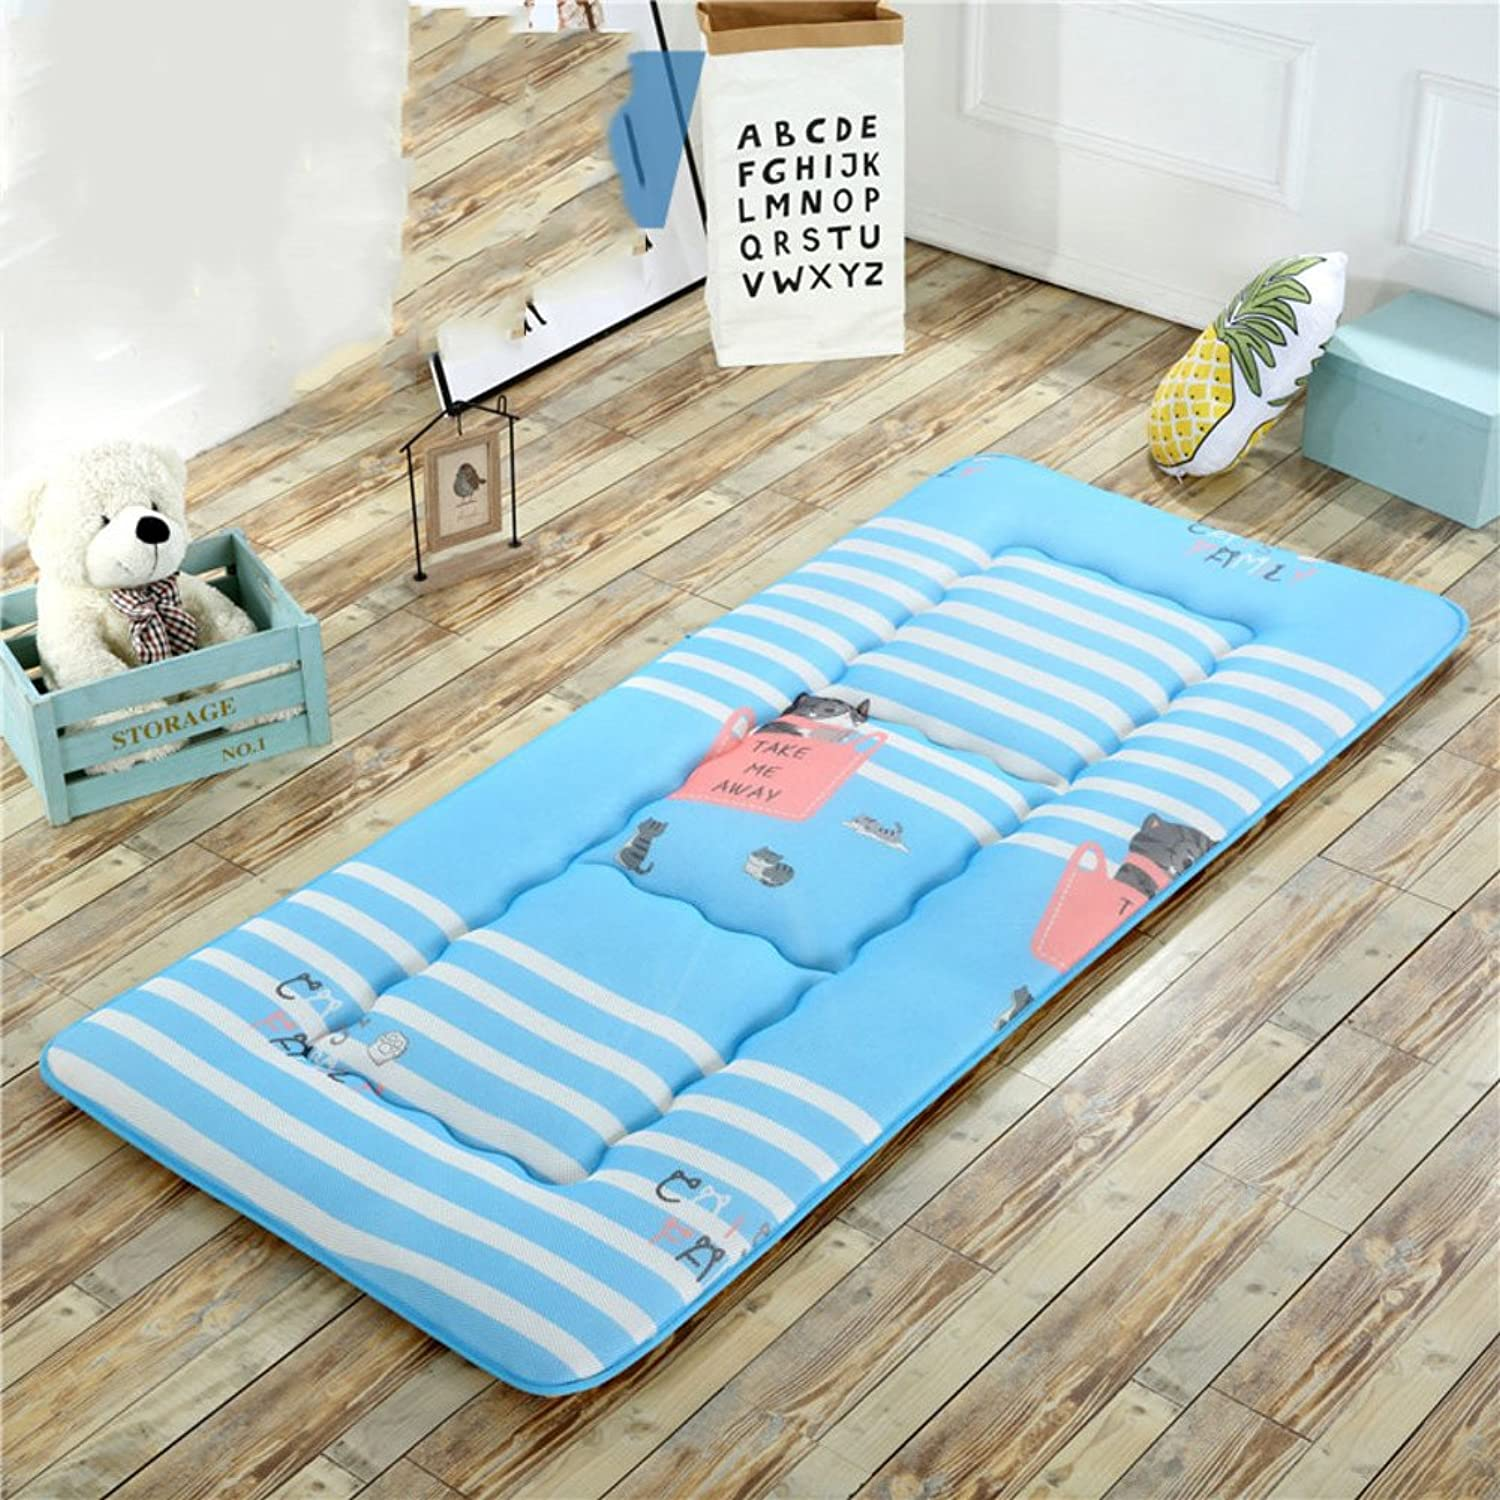 Collapsible Tatami mats Floor mat Cushion,Summer Breathable Pillow Mattress Student Dormitory Bedroom Foldable Sleeping pad Bed Predector-H 100x200cm(39x79inch)